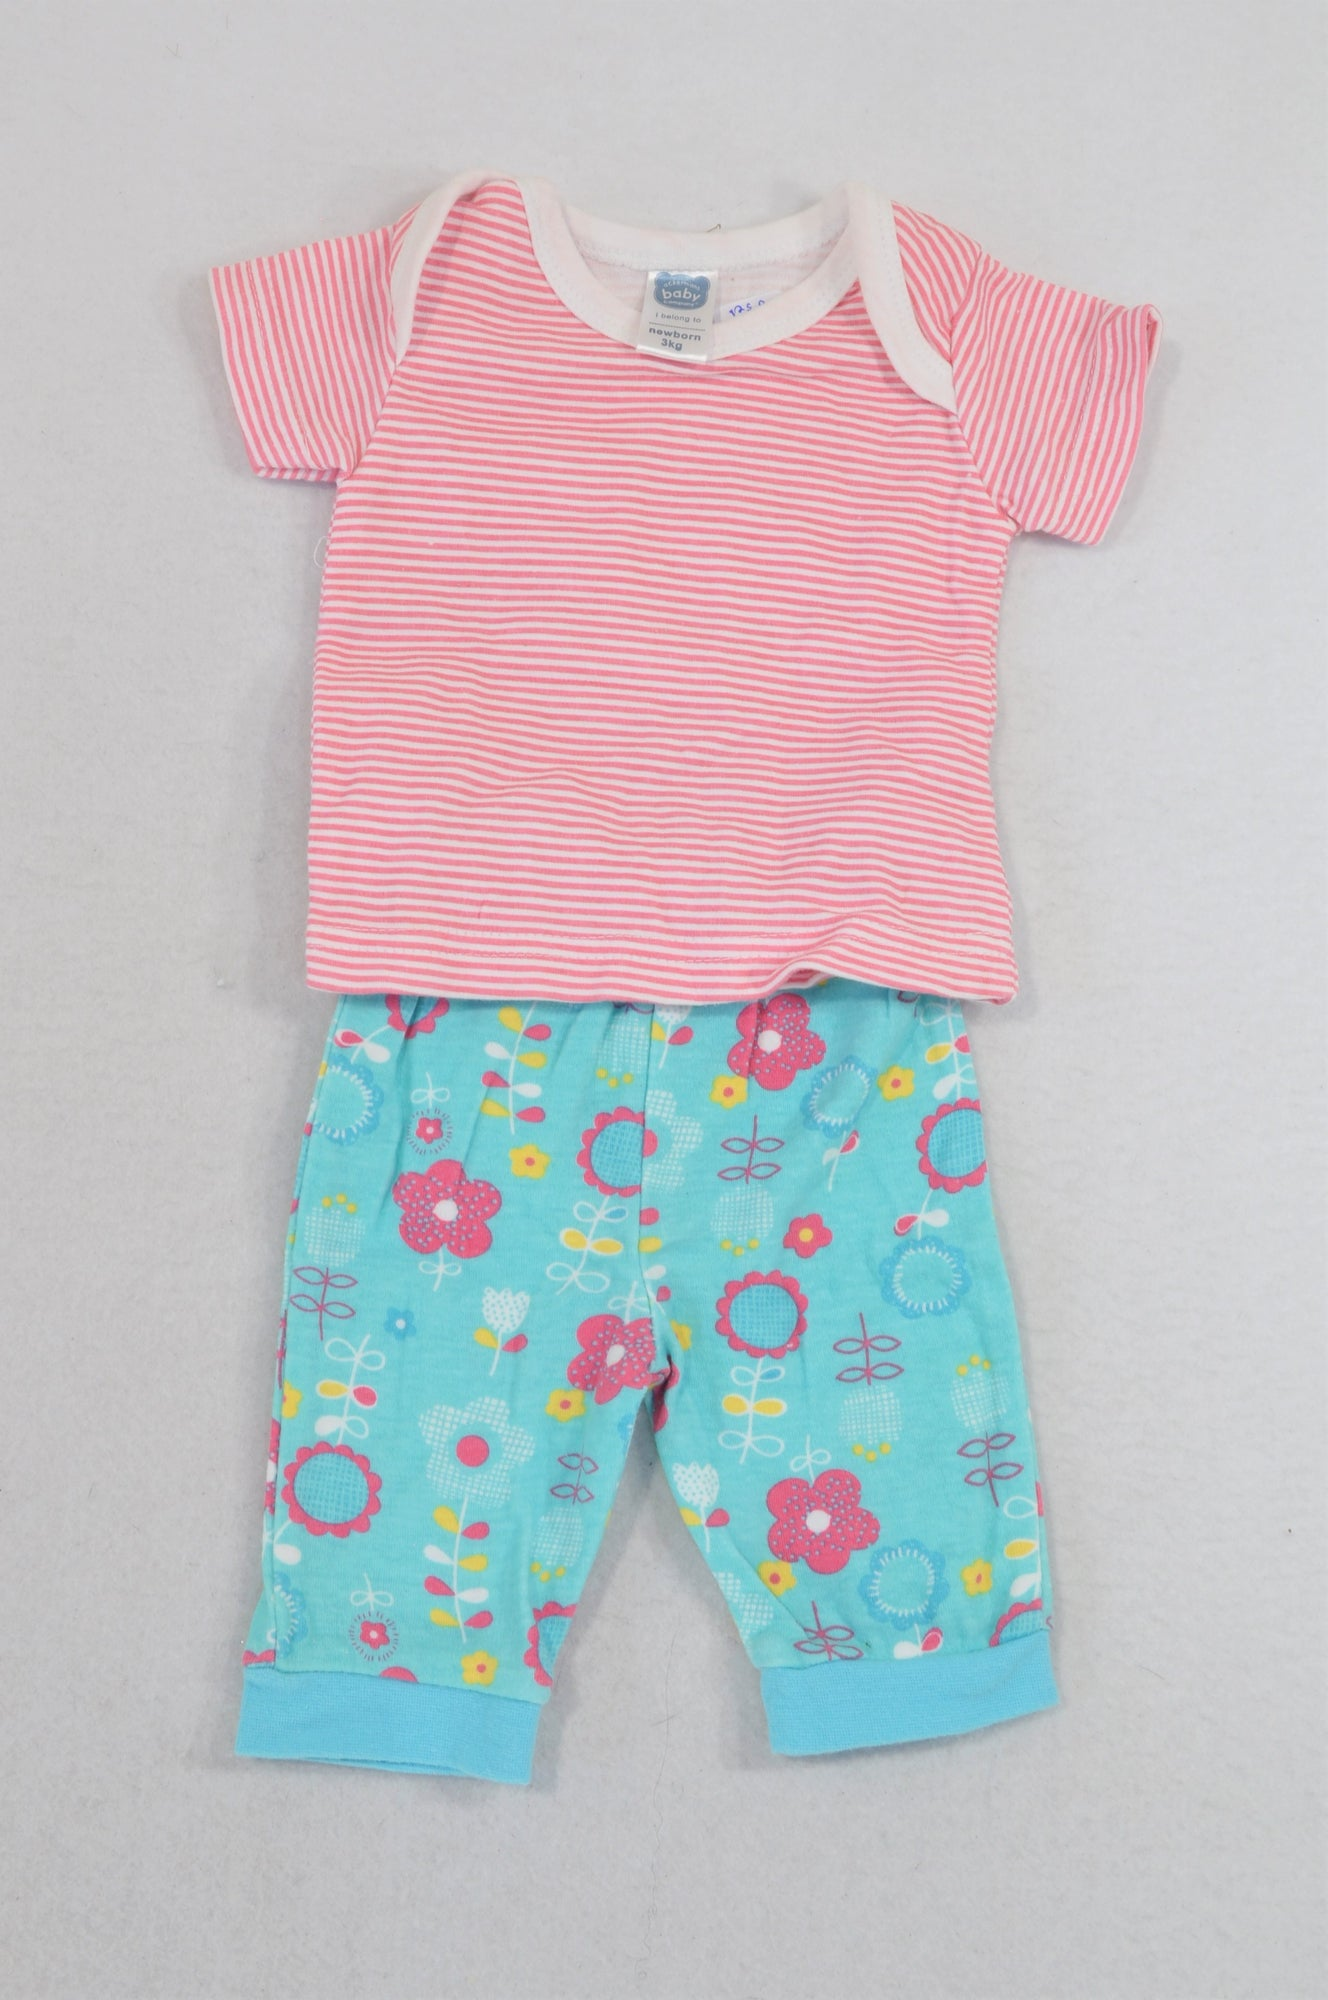 Ackermans Pink Stripe T-Shirt & Aqua Flower Leggings Outfit Girls N-B